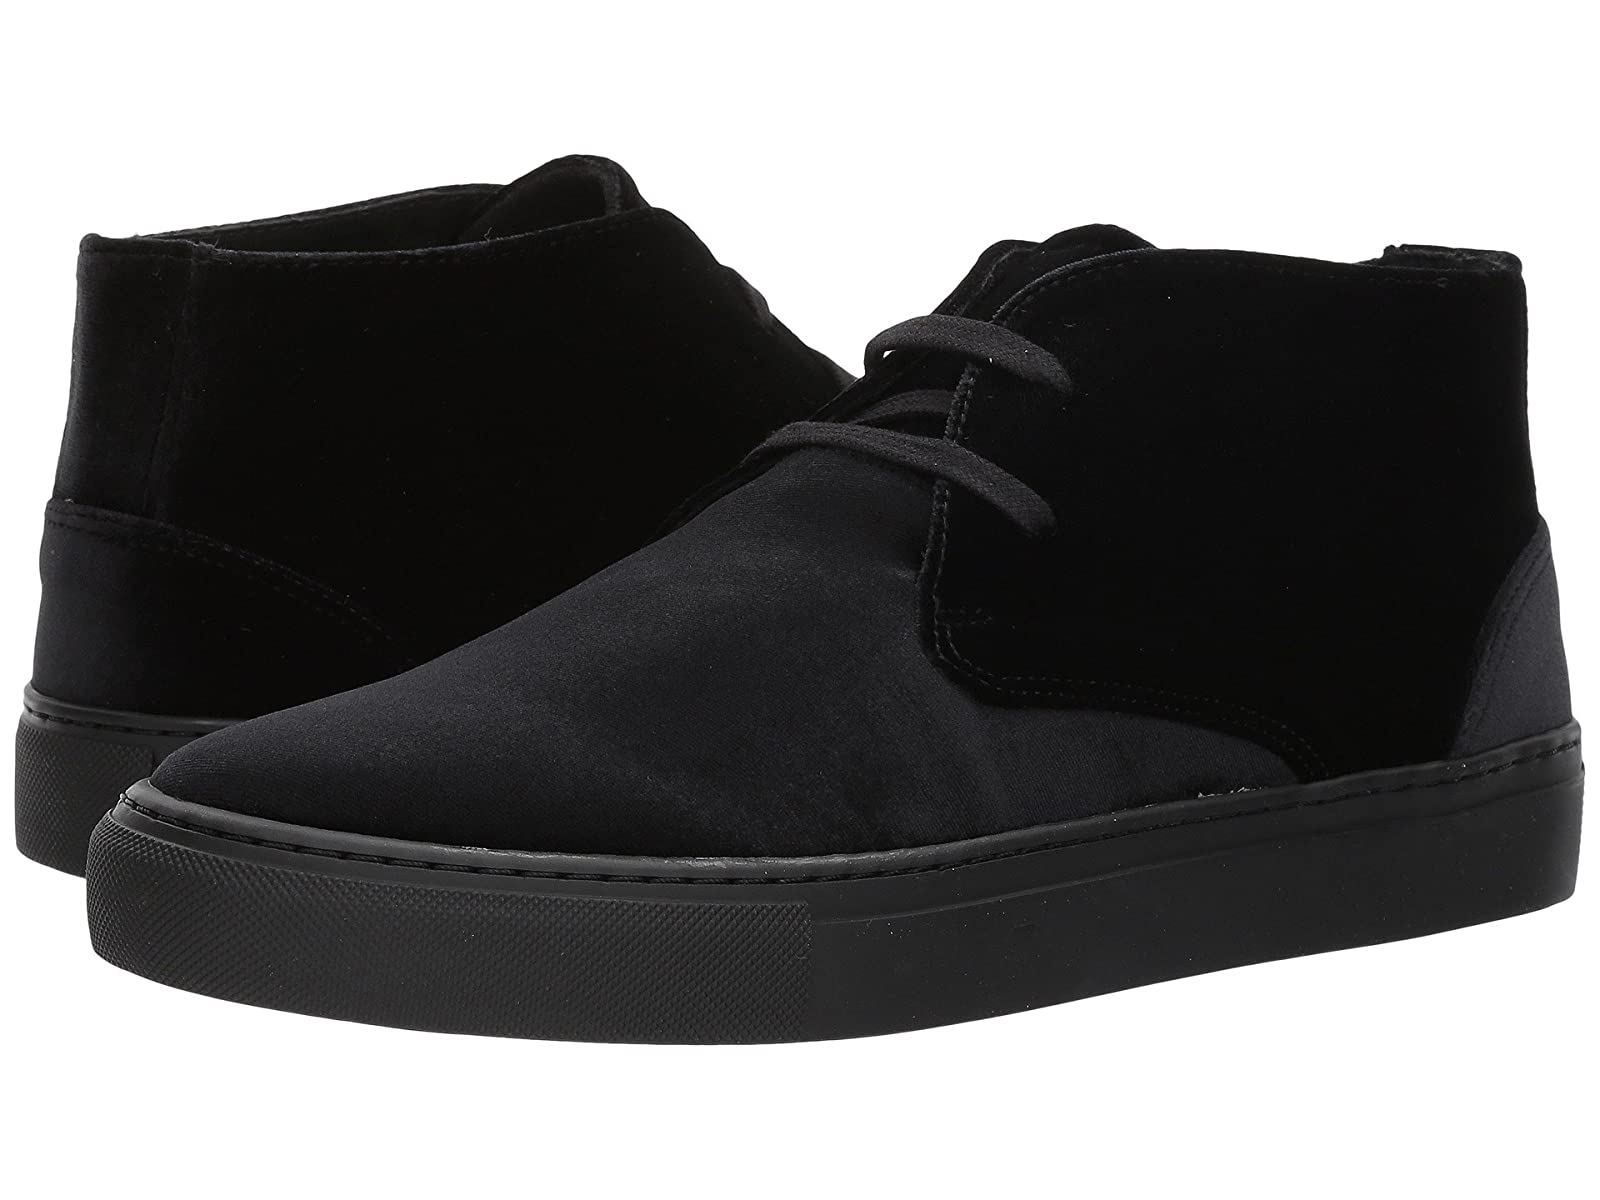 Supply Lab DanielCheap and distinctive eye-catching shoes